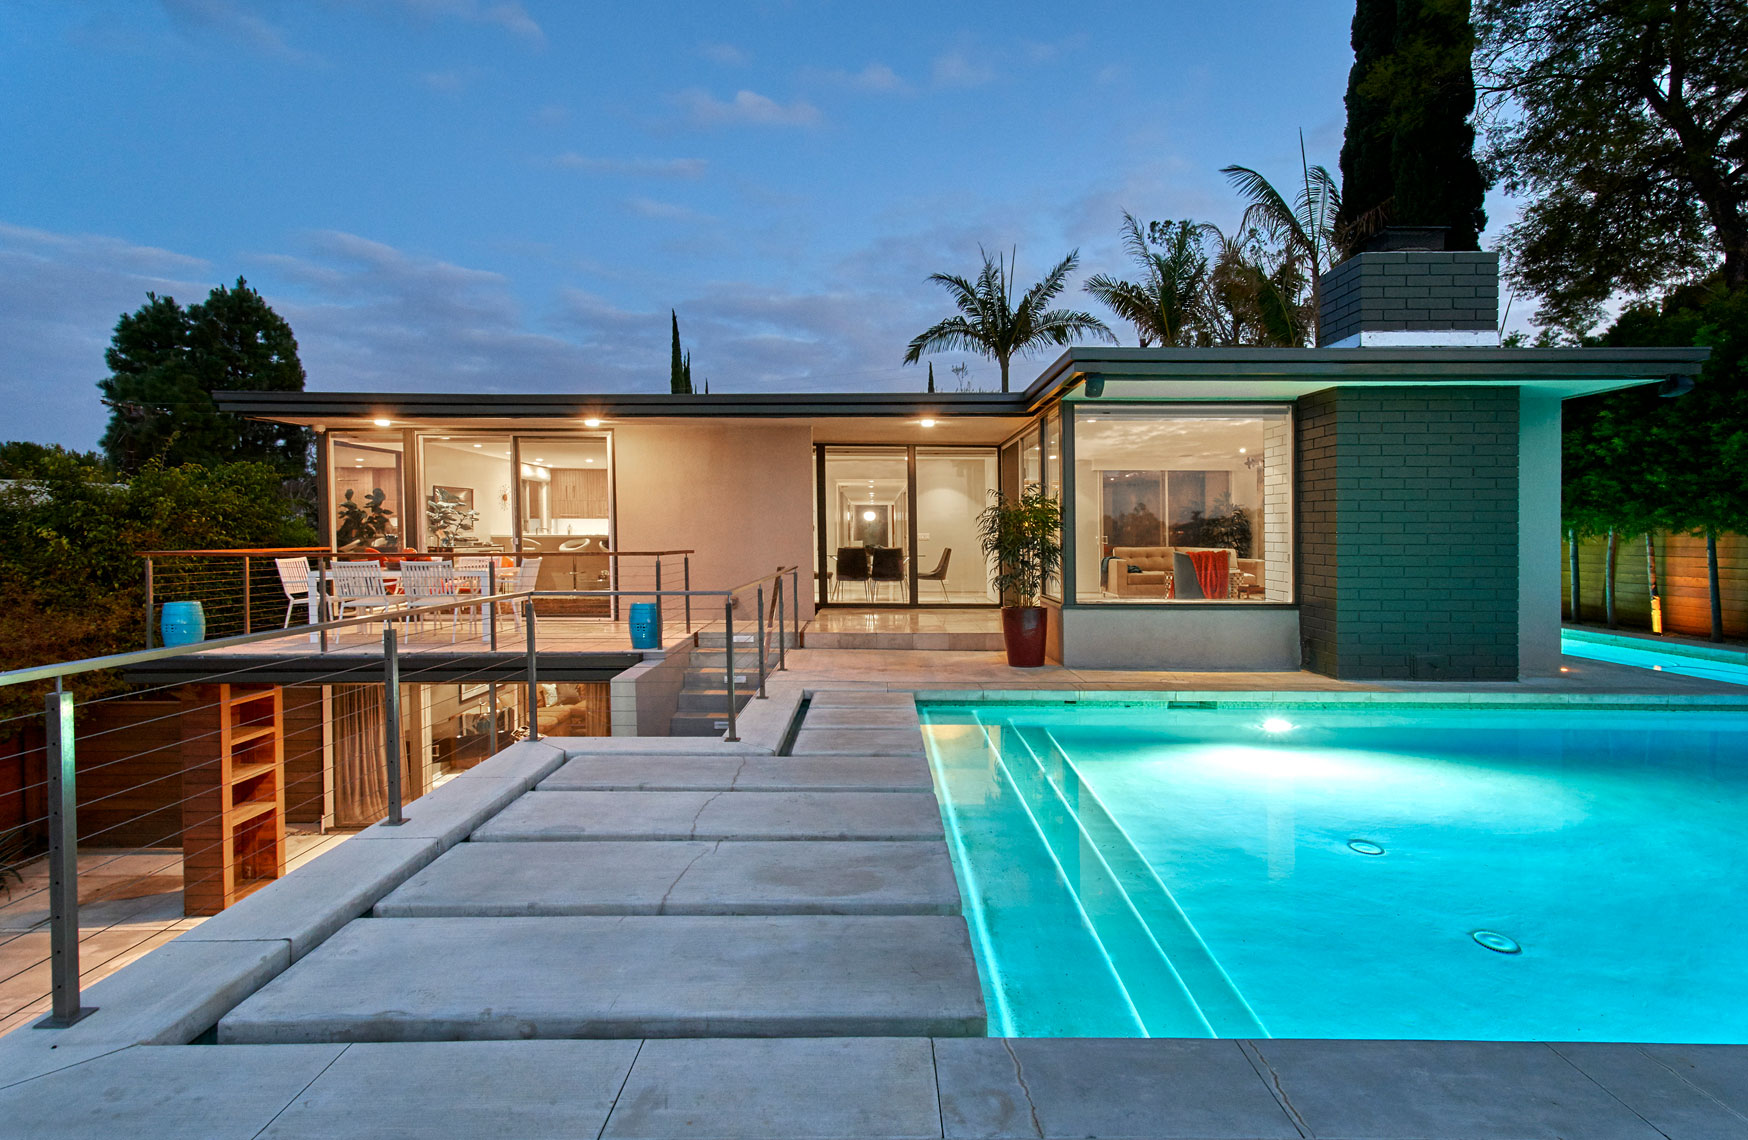 Architectural-photography-of-Mid-century-modern-glass house with pool-at-dusk-Joe-Atlas-architectural-photographer-Los-Angeles.